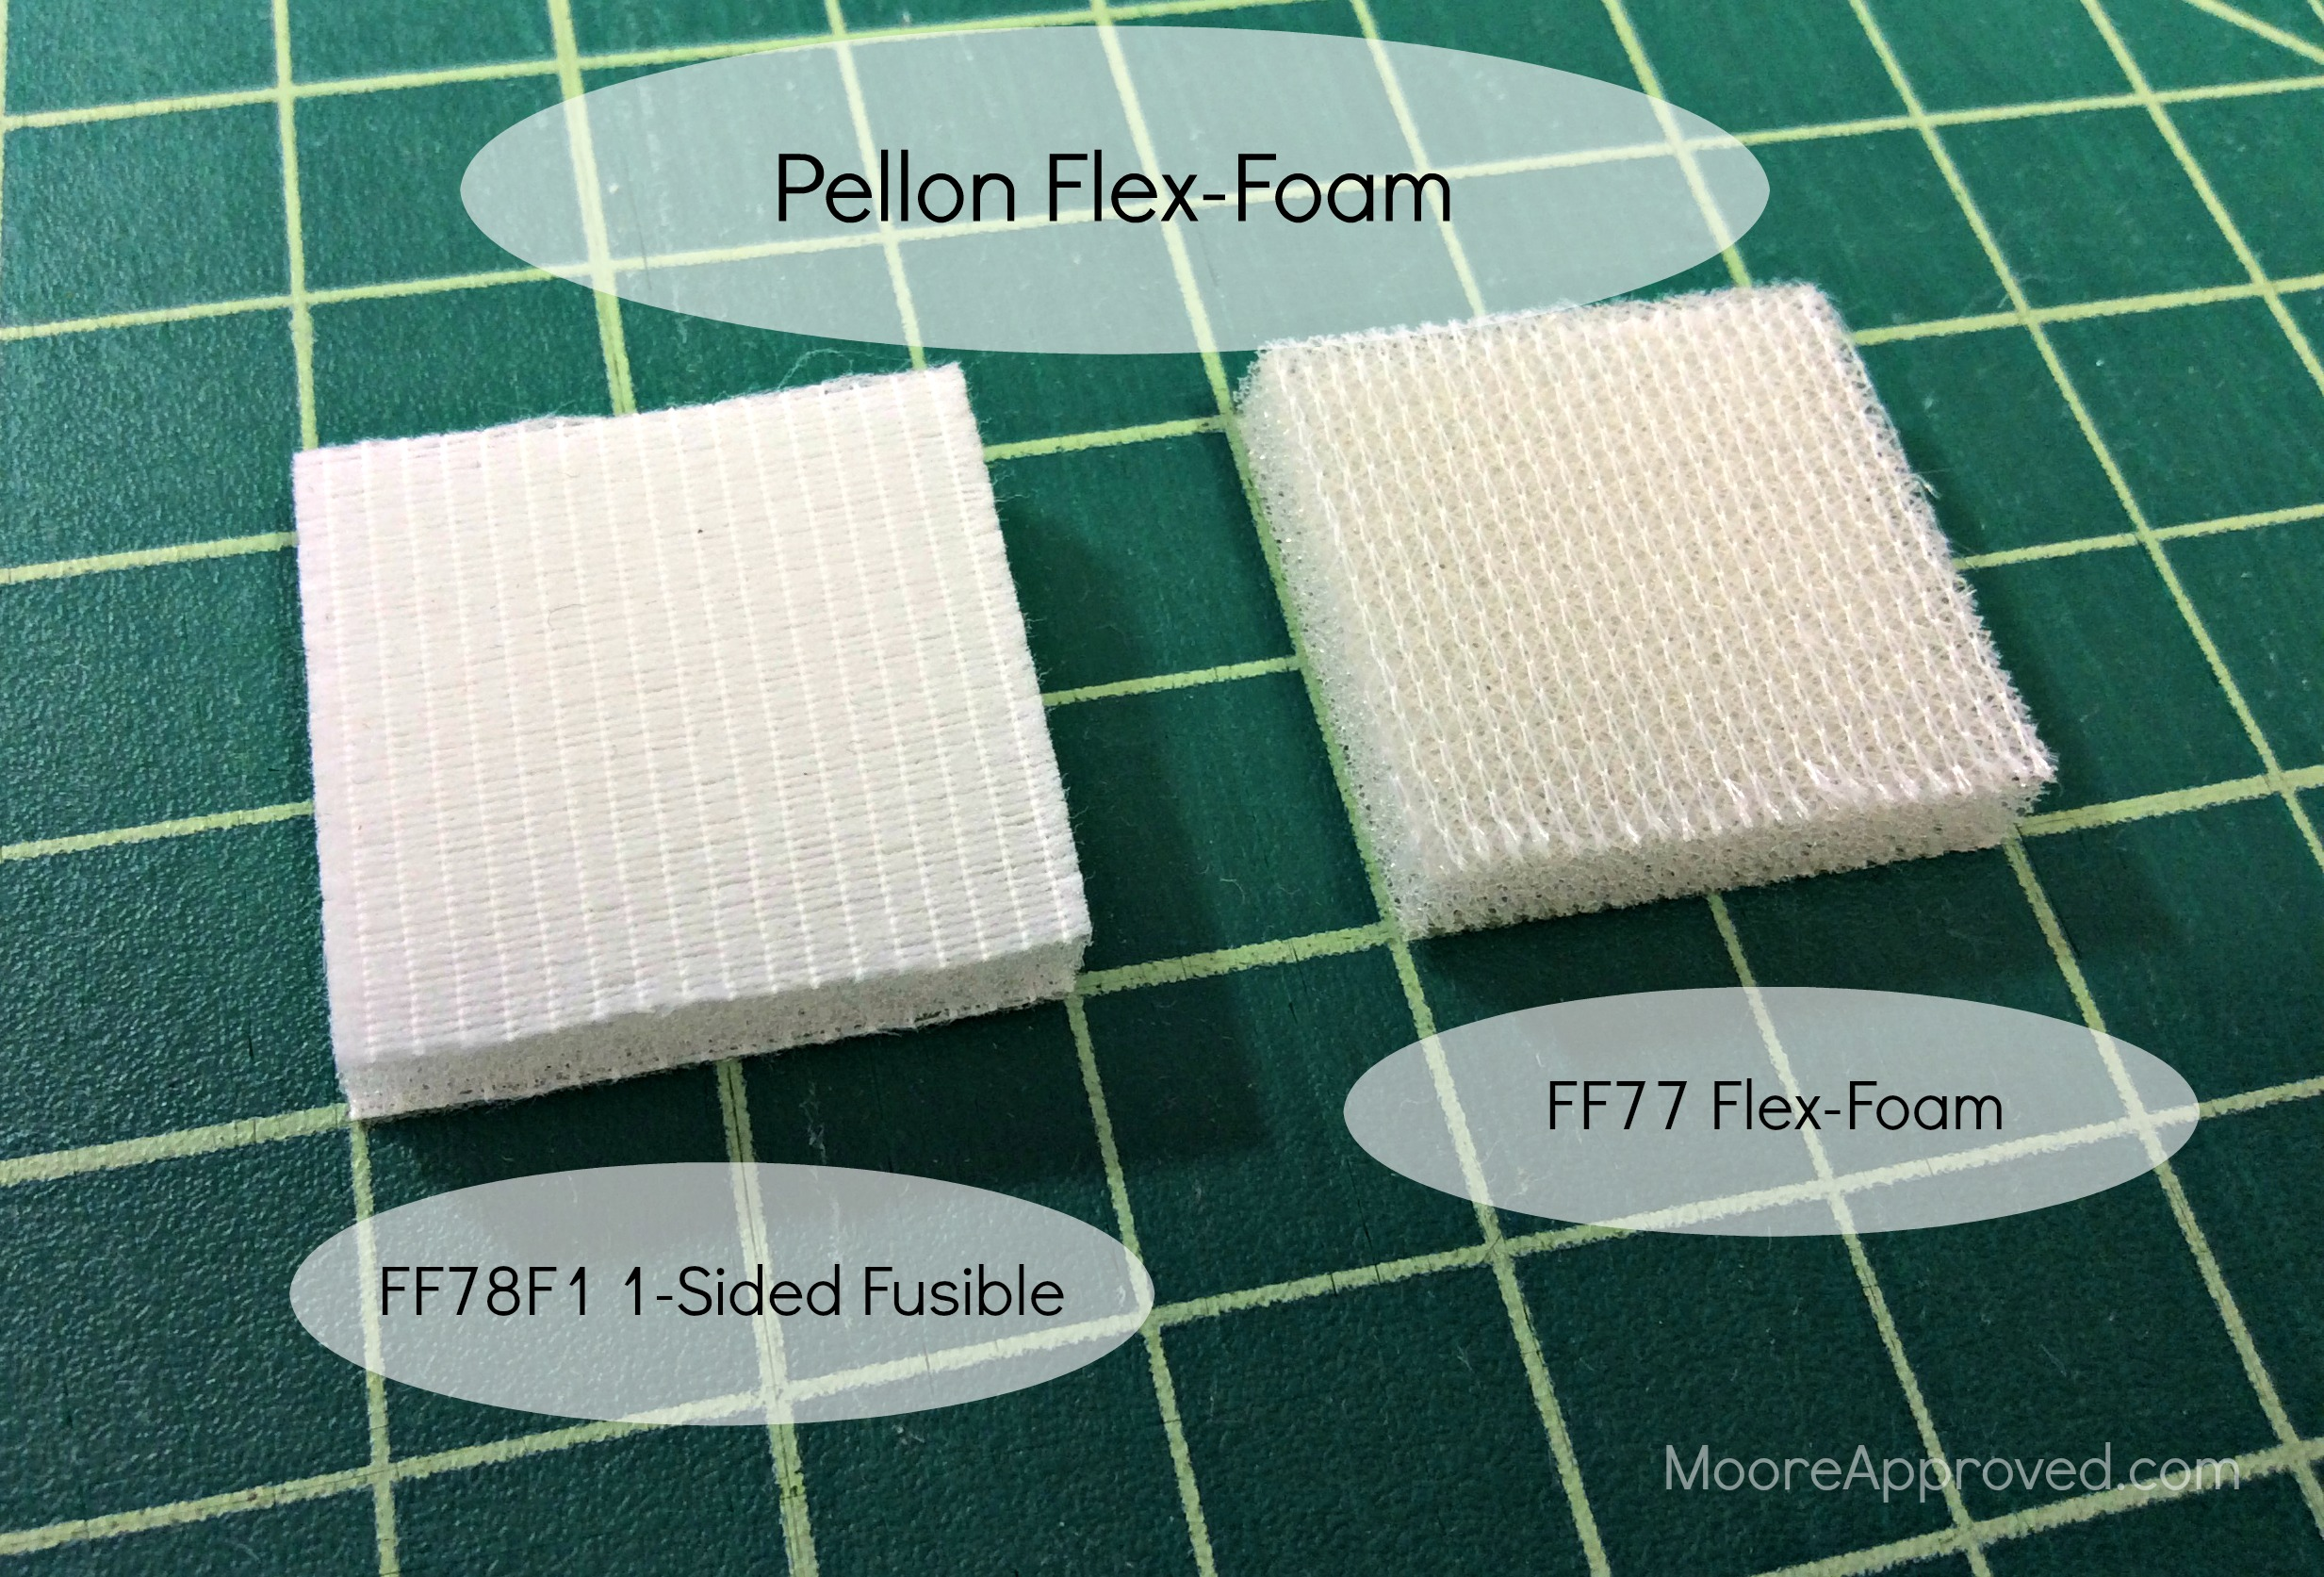 Pellon Flex-Foam: Sew-In vs  1-Sided Fusible – MOORE APPROVED